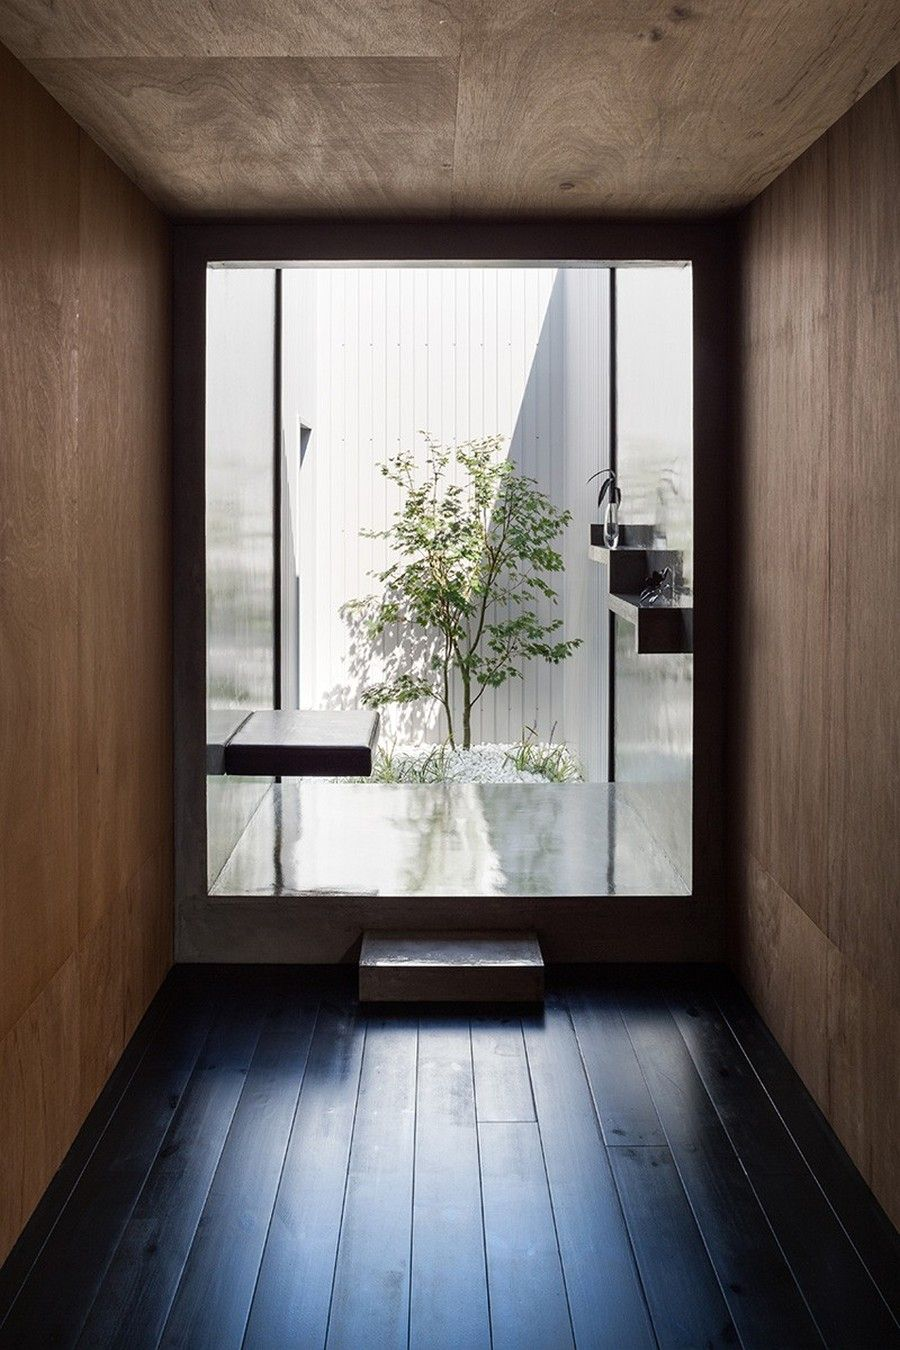 Japanese minimalism in the interior